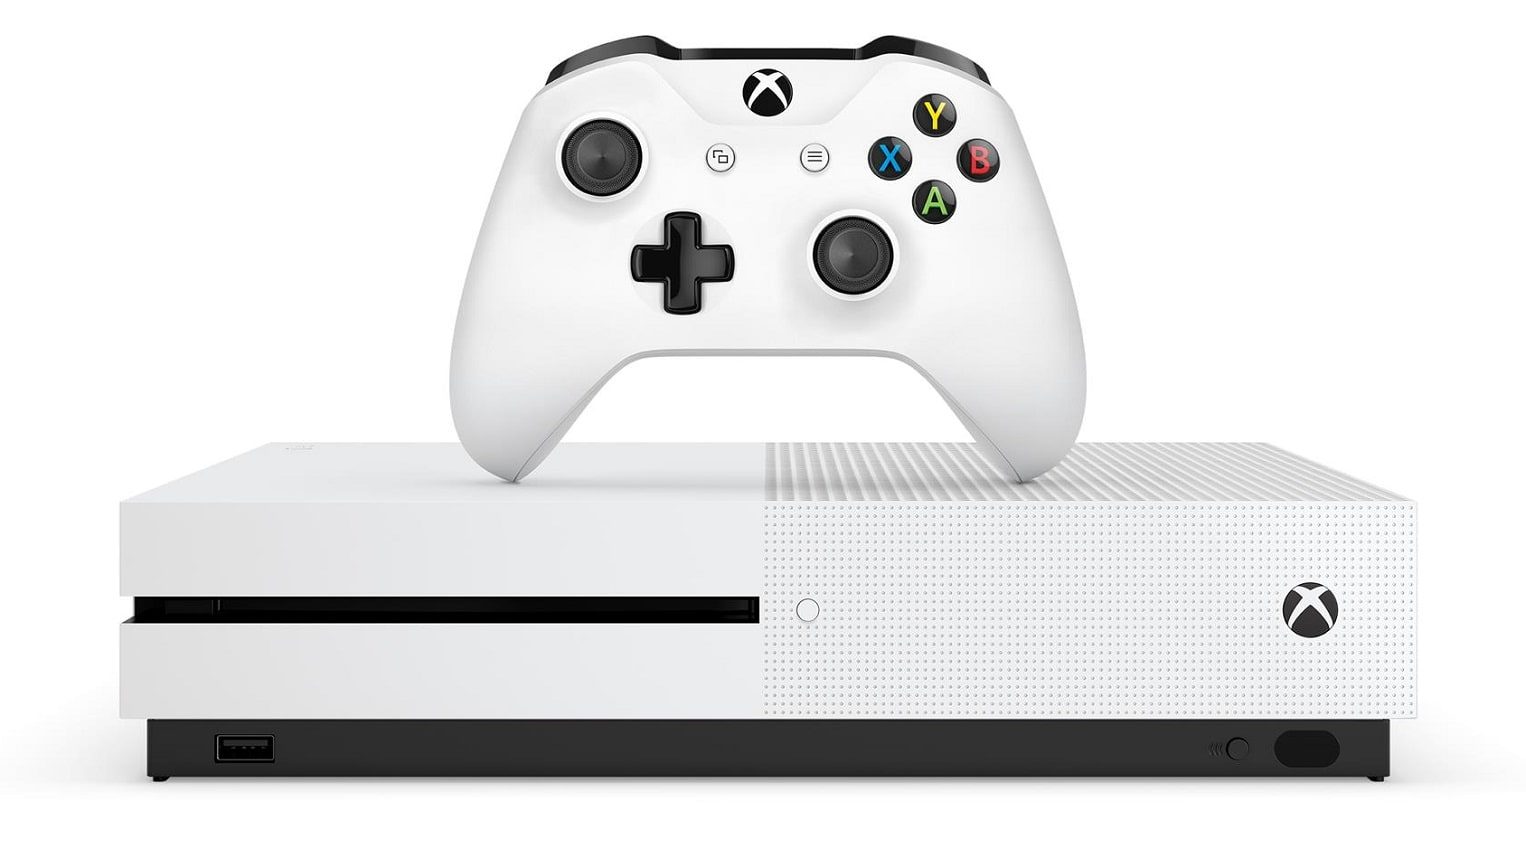 Microsoft working on a toolkit to expand Xbox Live across